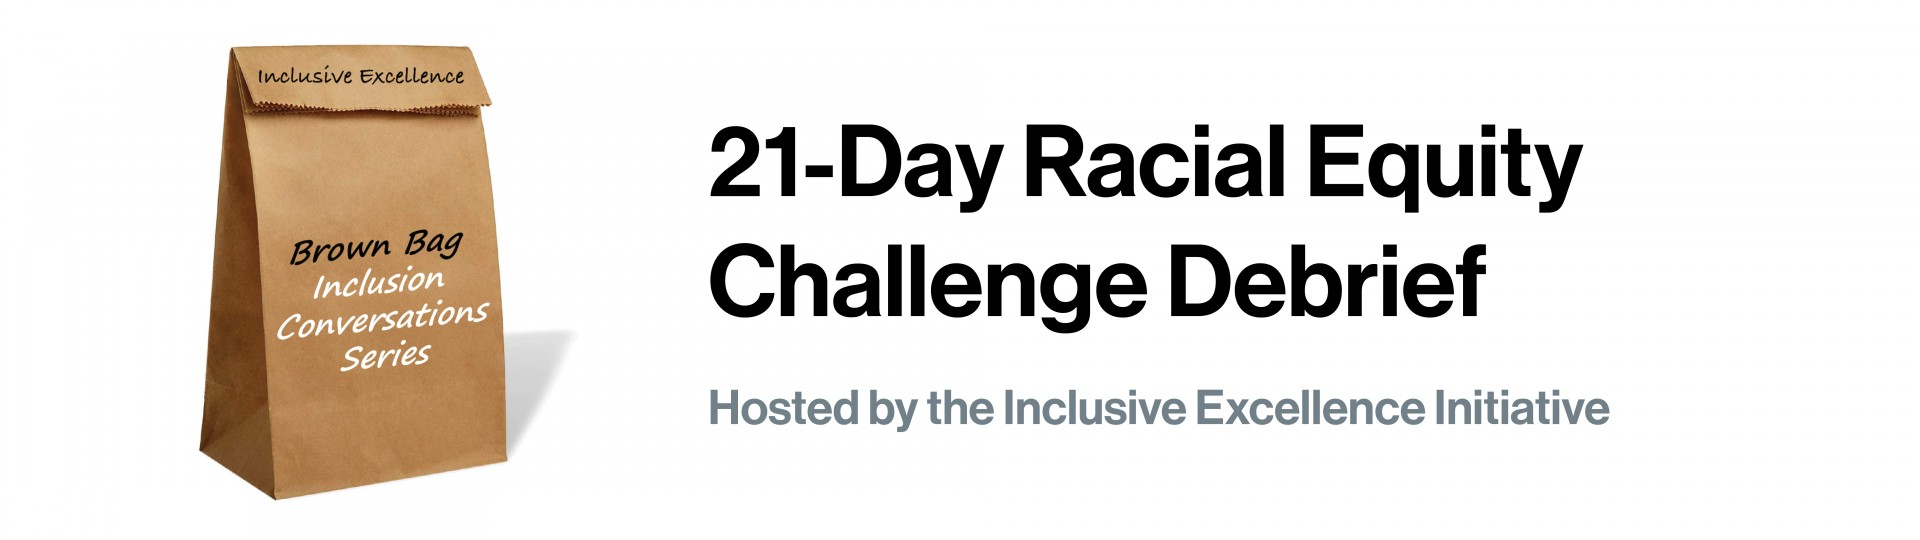 21 day racial equity challenge rit debrief inclusive excellence